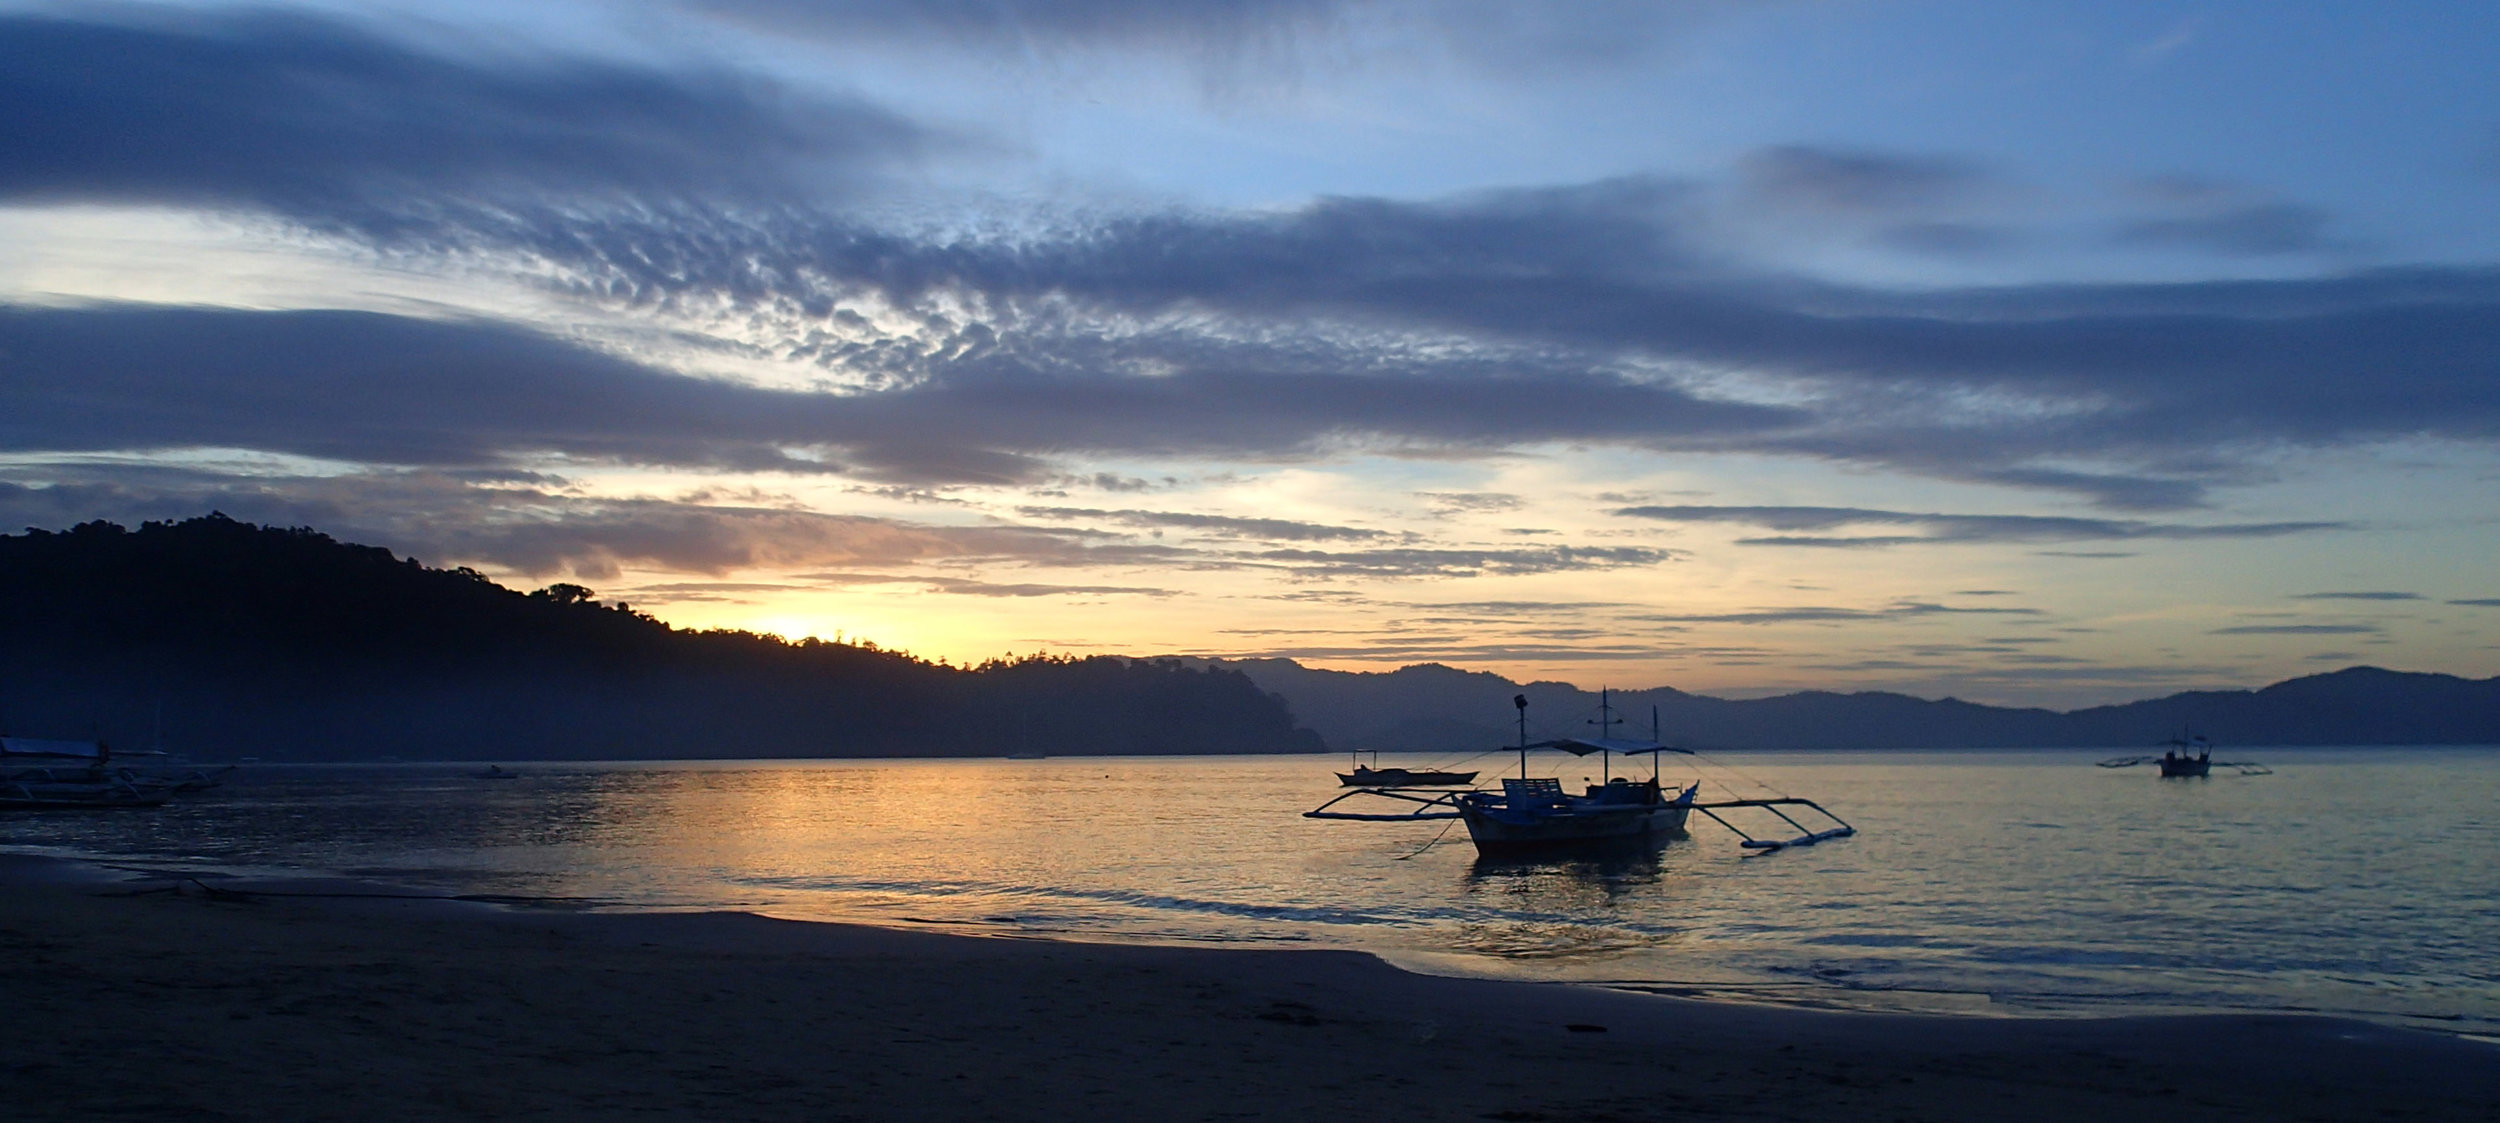 bangka sunset.jpg